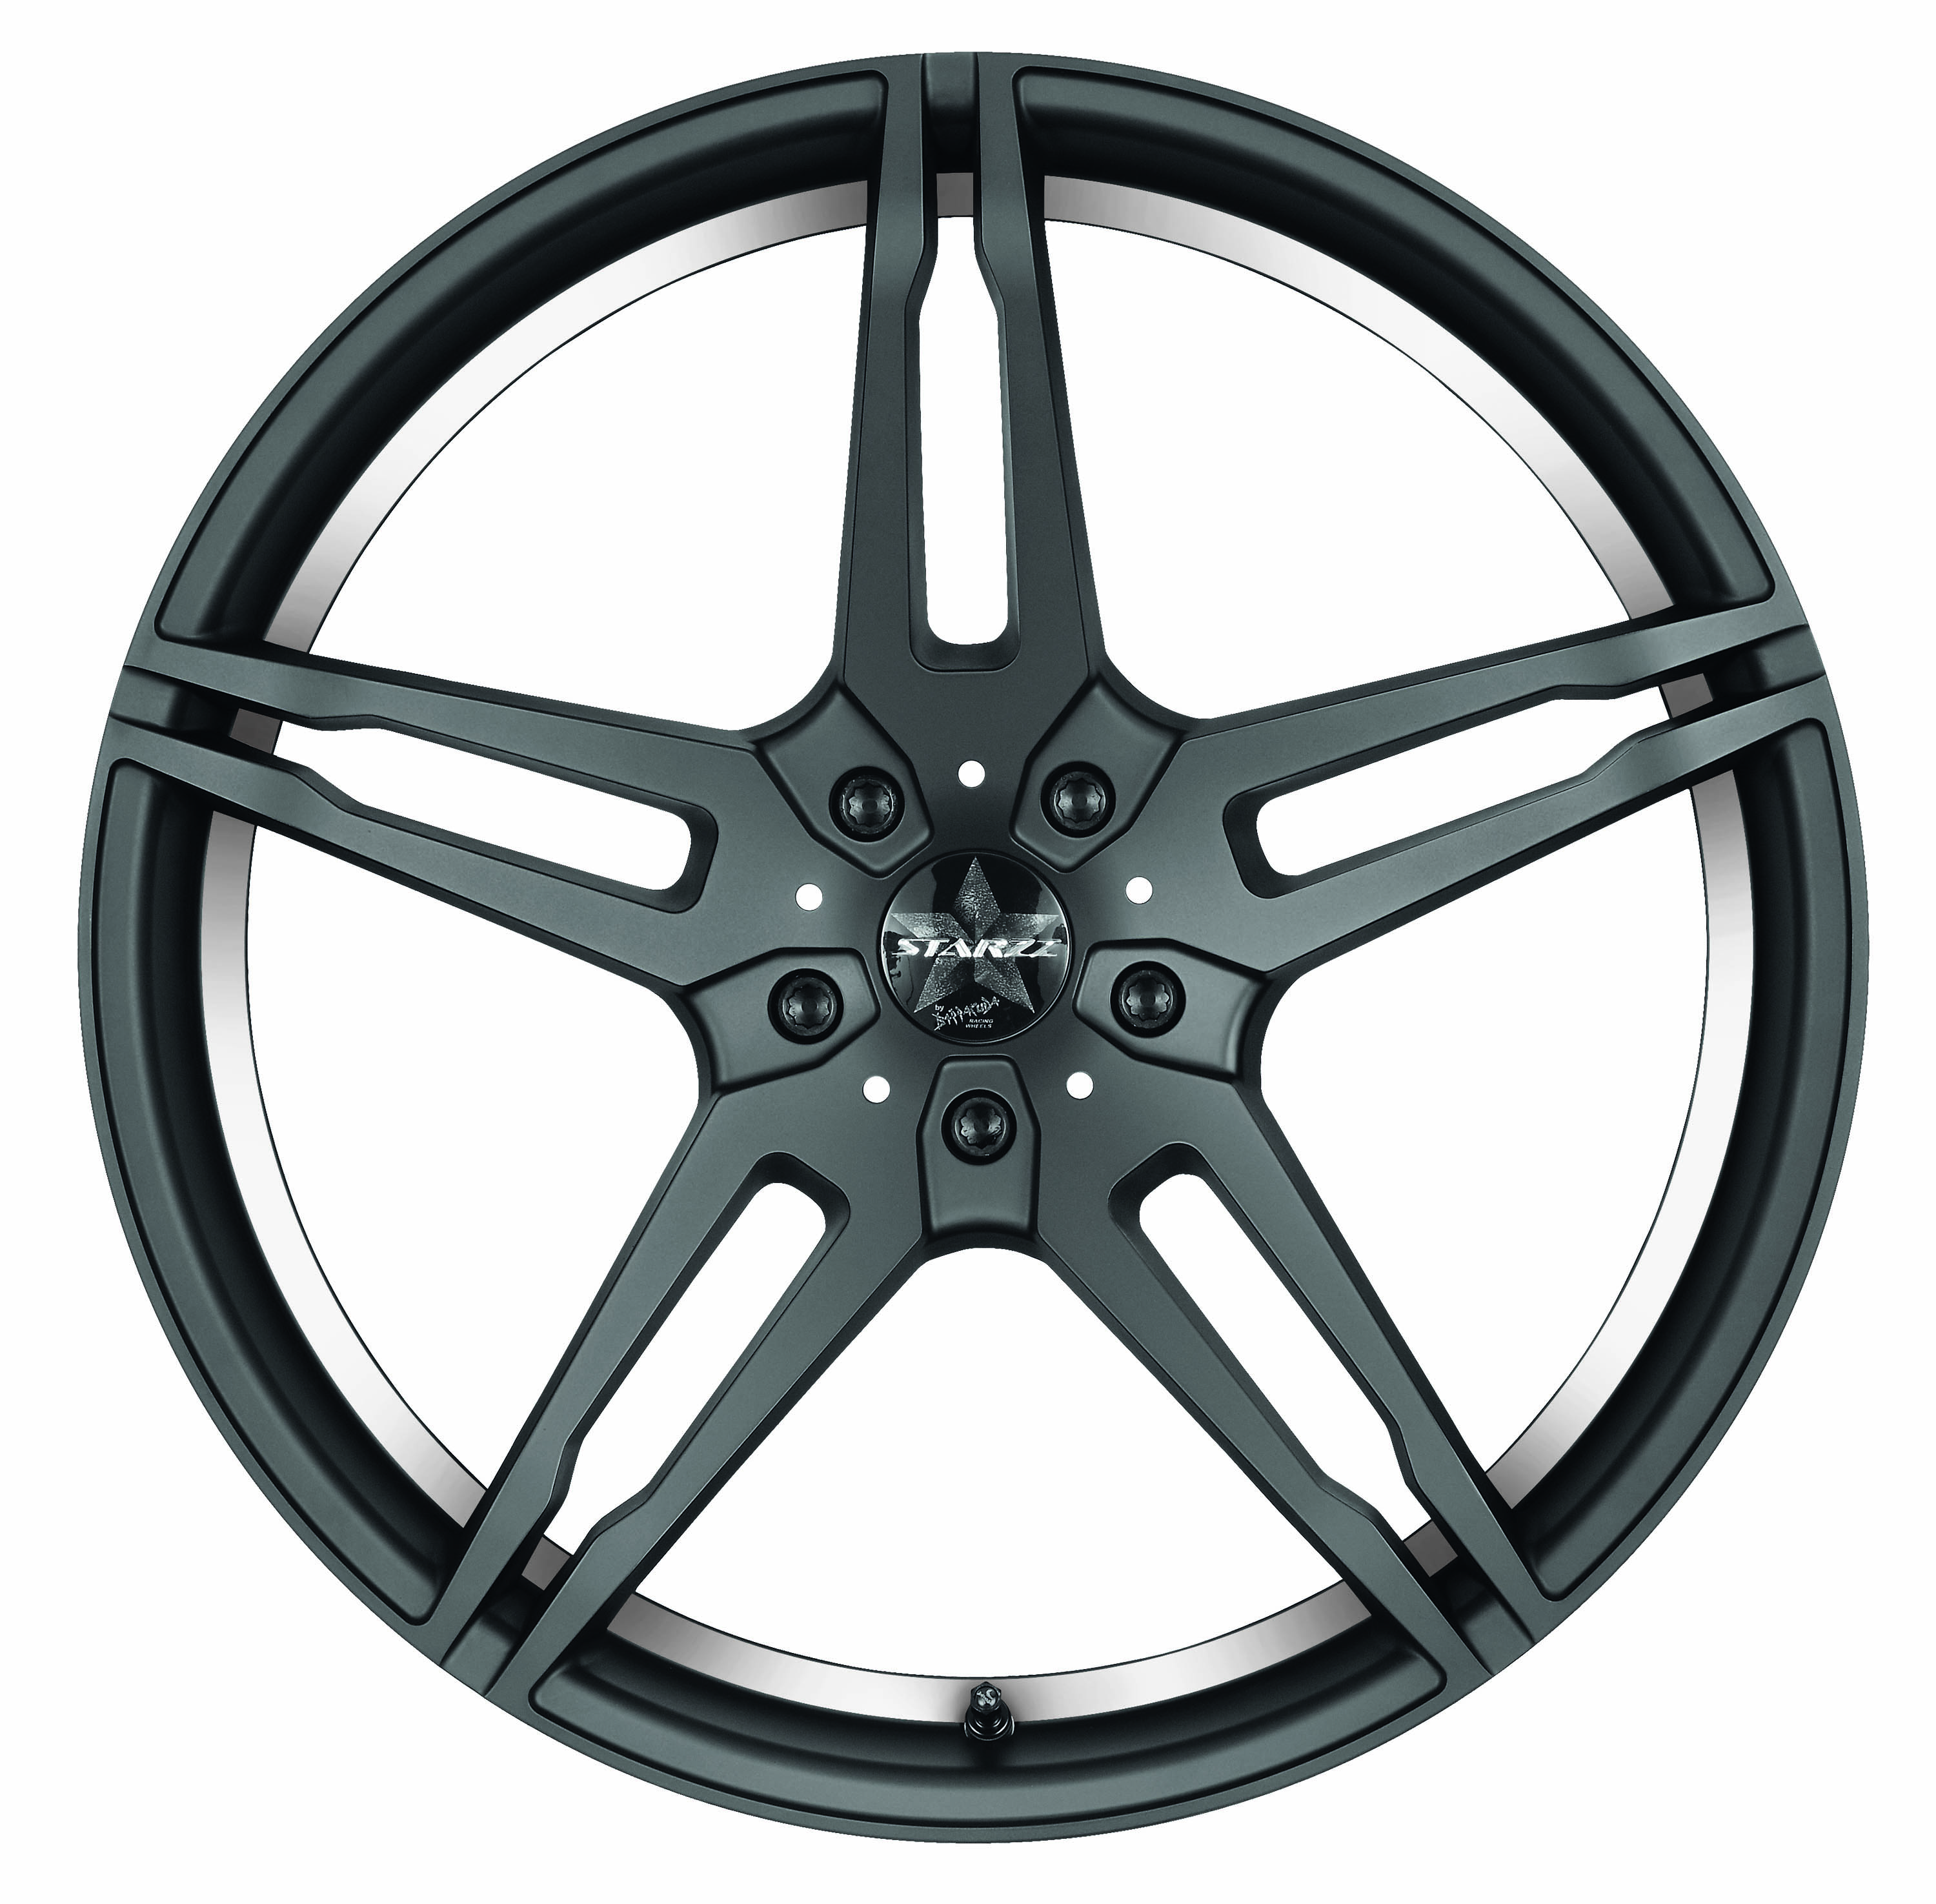 BARRACUDA STARZZ Mattblack-polished / undercut Color Trim weiss - 8,5x19 / 5x112 / ET40, RTSTA85945R/MB-P/900322028